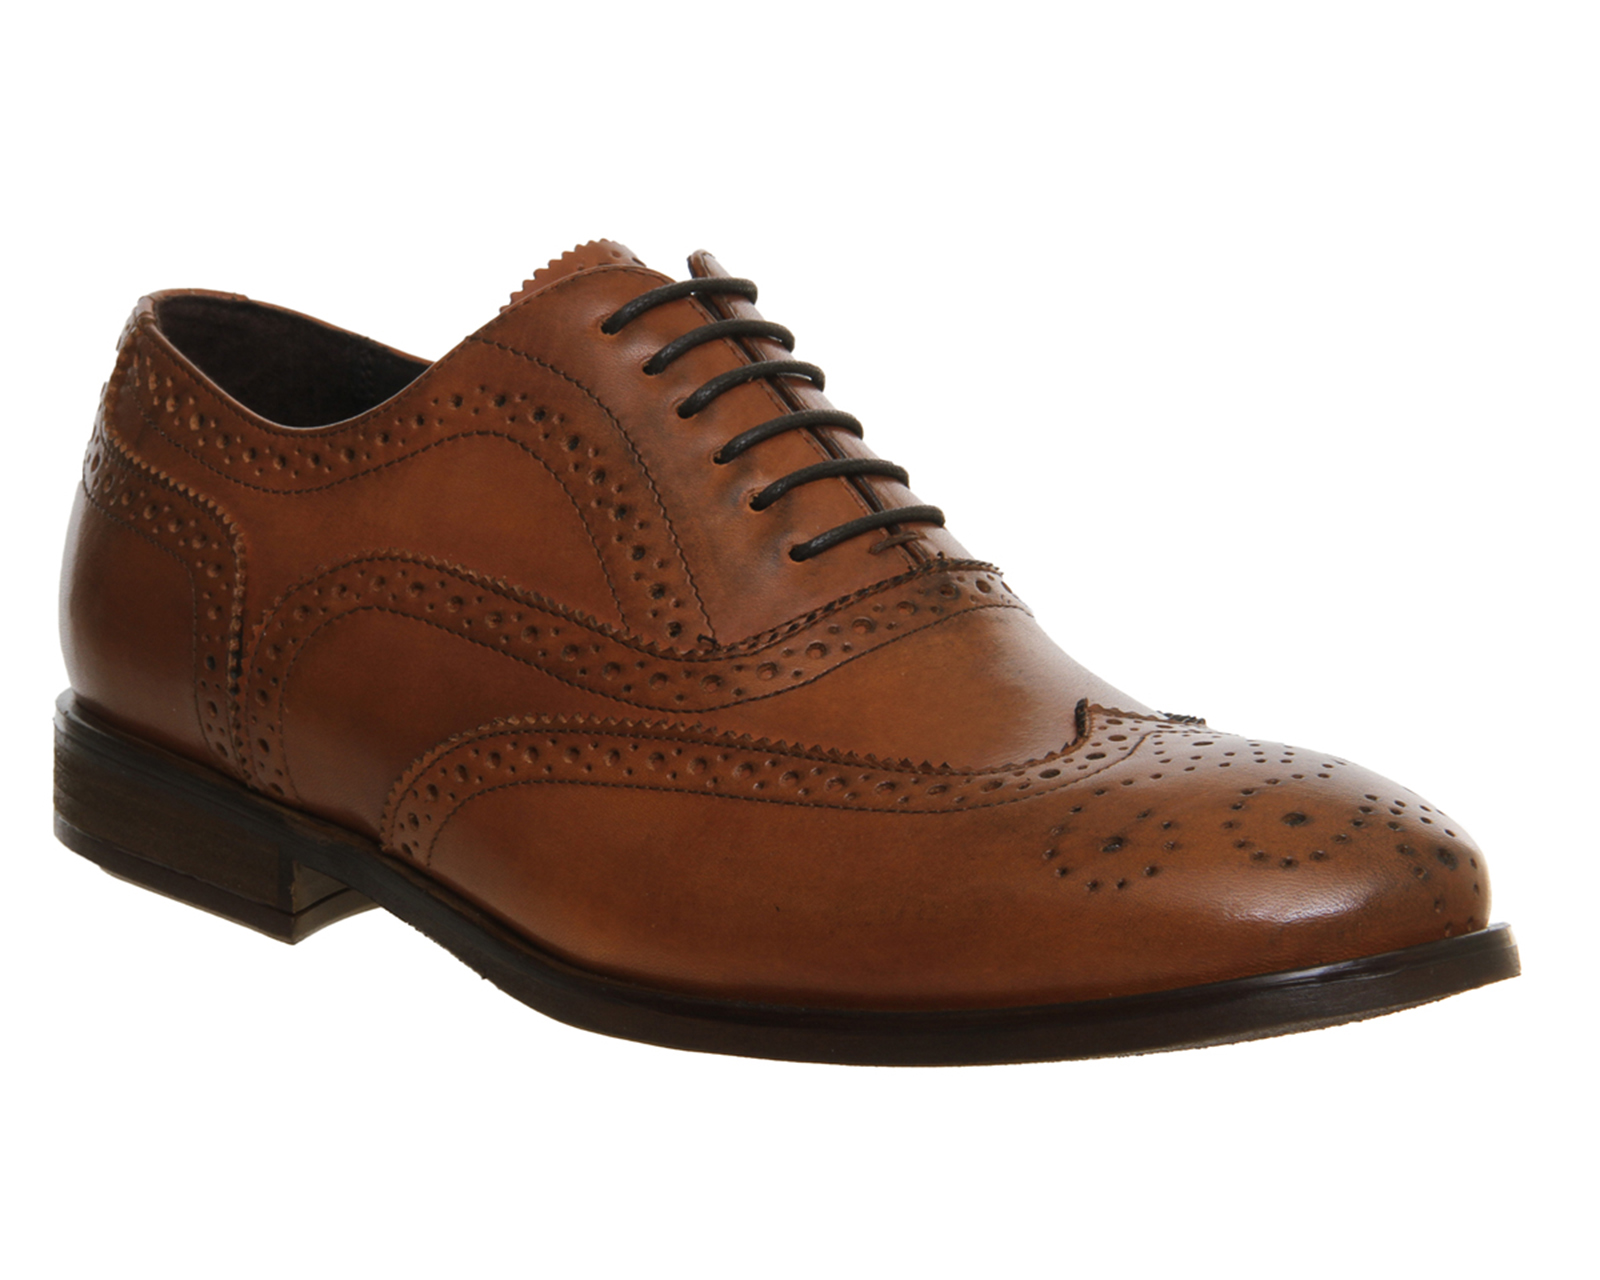 Mens Ask the Missus Brooklyn Brogues TAN LEATHER Formal Shoes